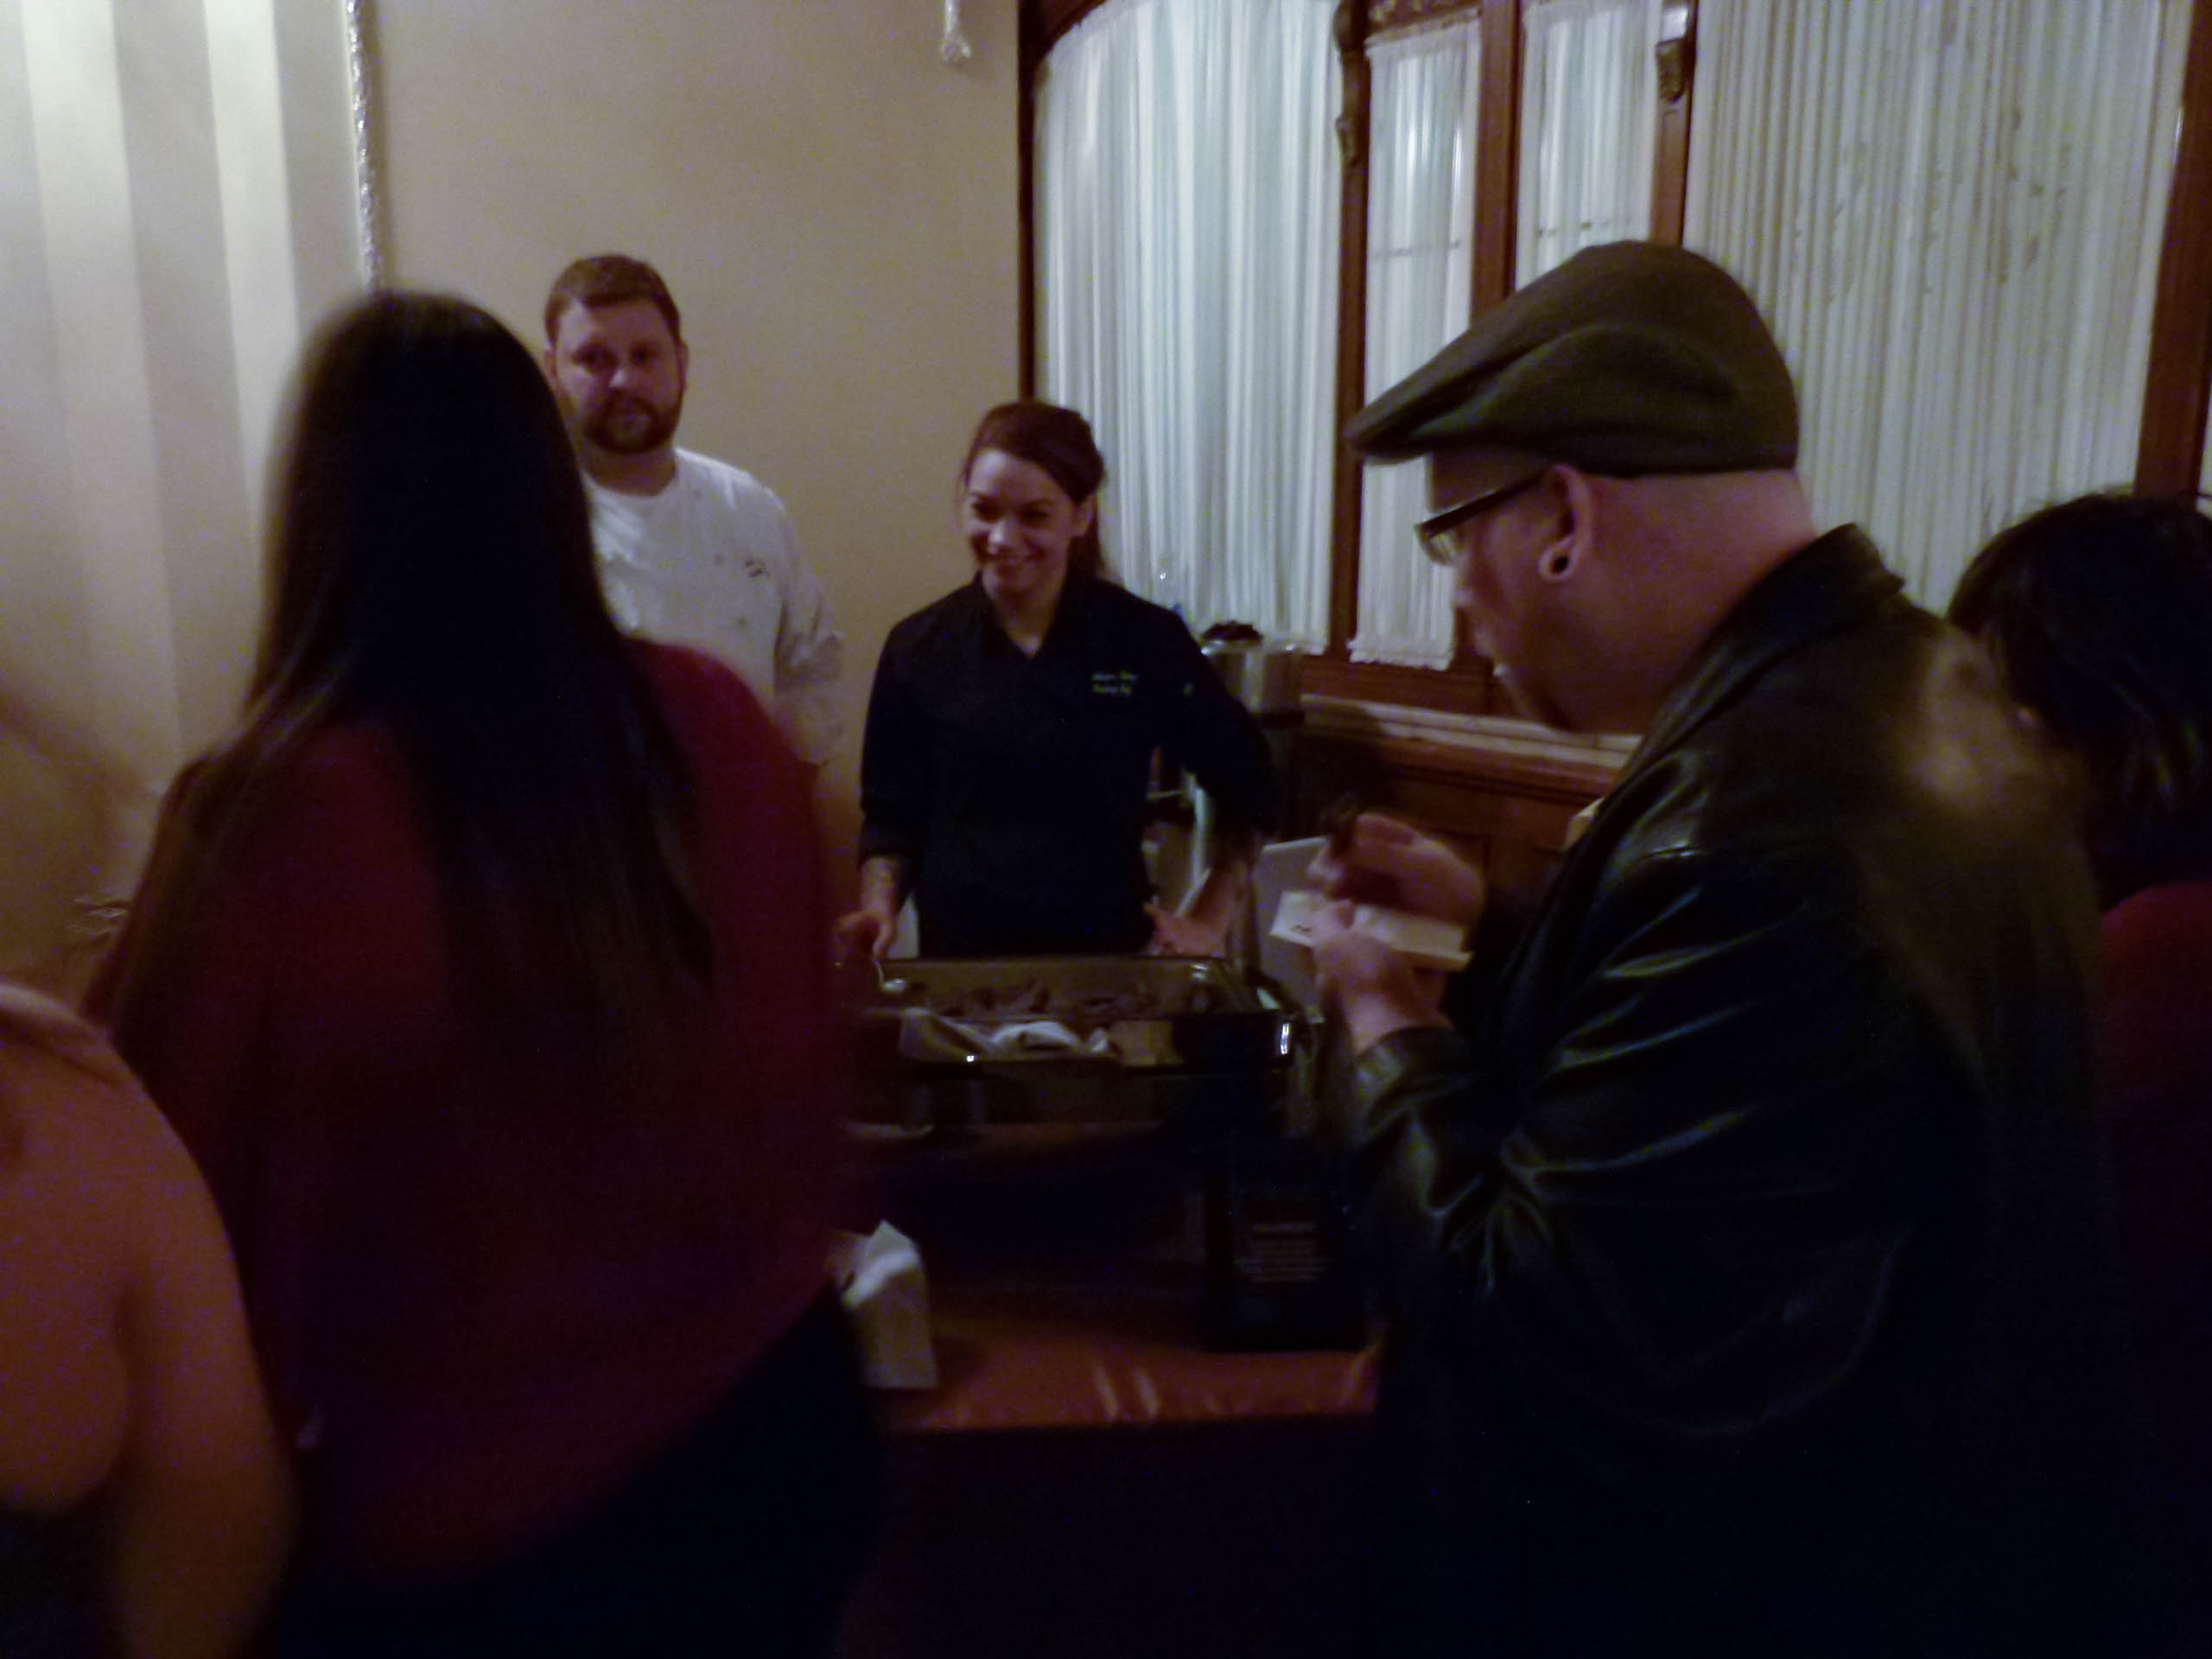 People line up for Valozzi's Chocolate Ravioli with Chocolate Ganache, Vanilla and Pomegranate served by Josiah Henry and Tabrina Avery.